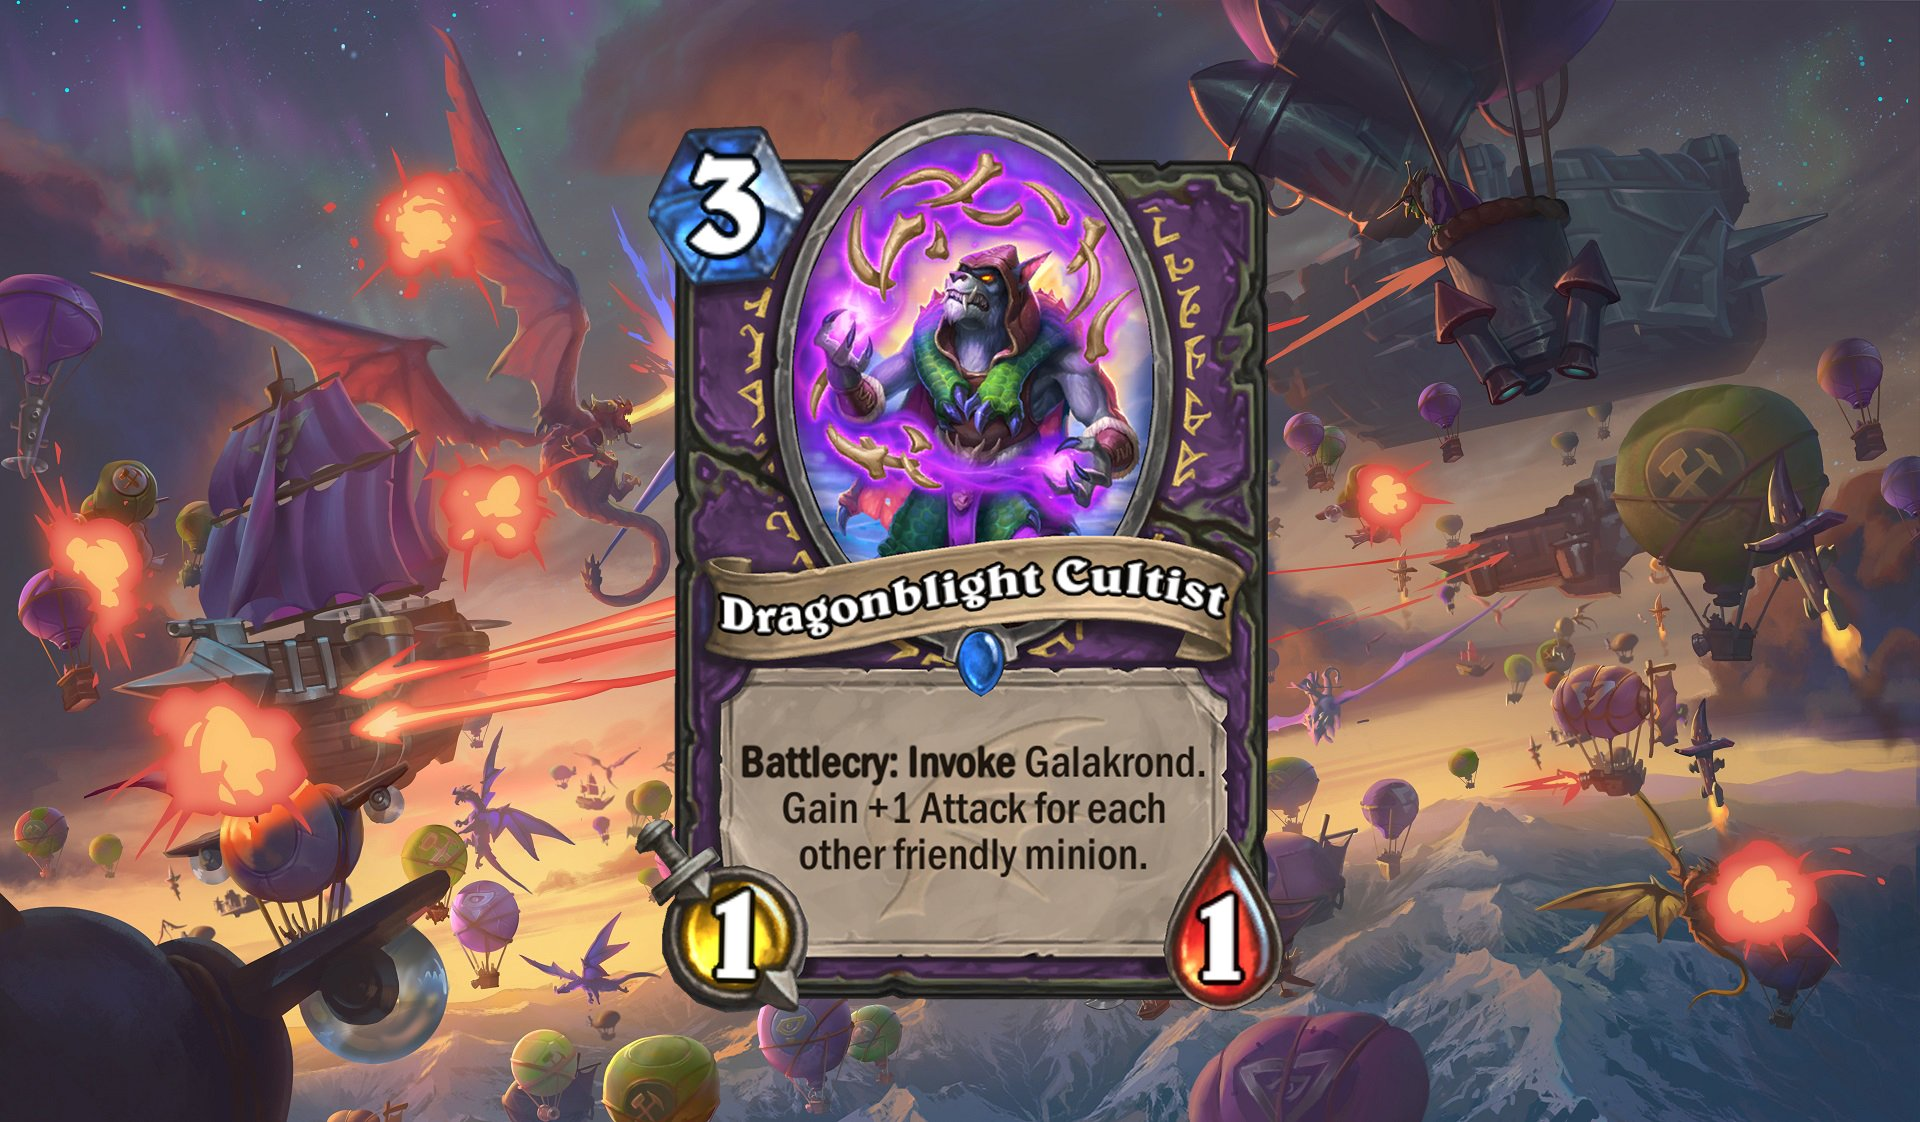 Hearthstone - Dragonblight Cultist